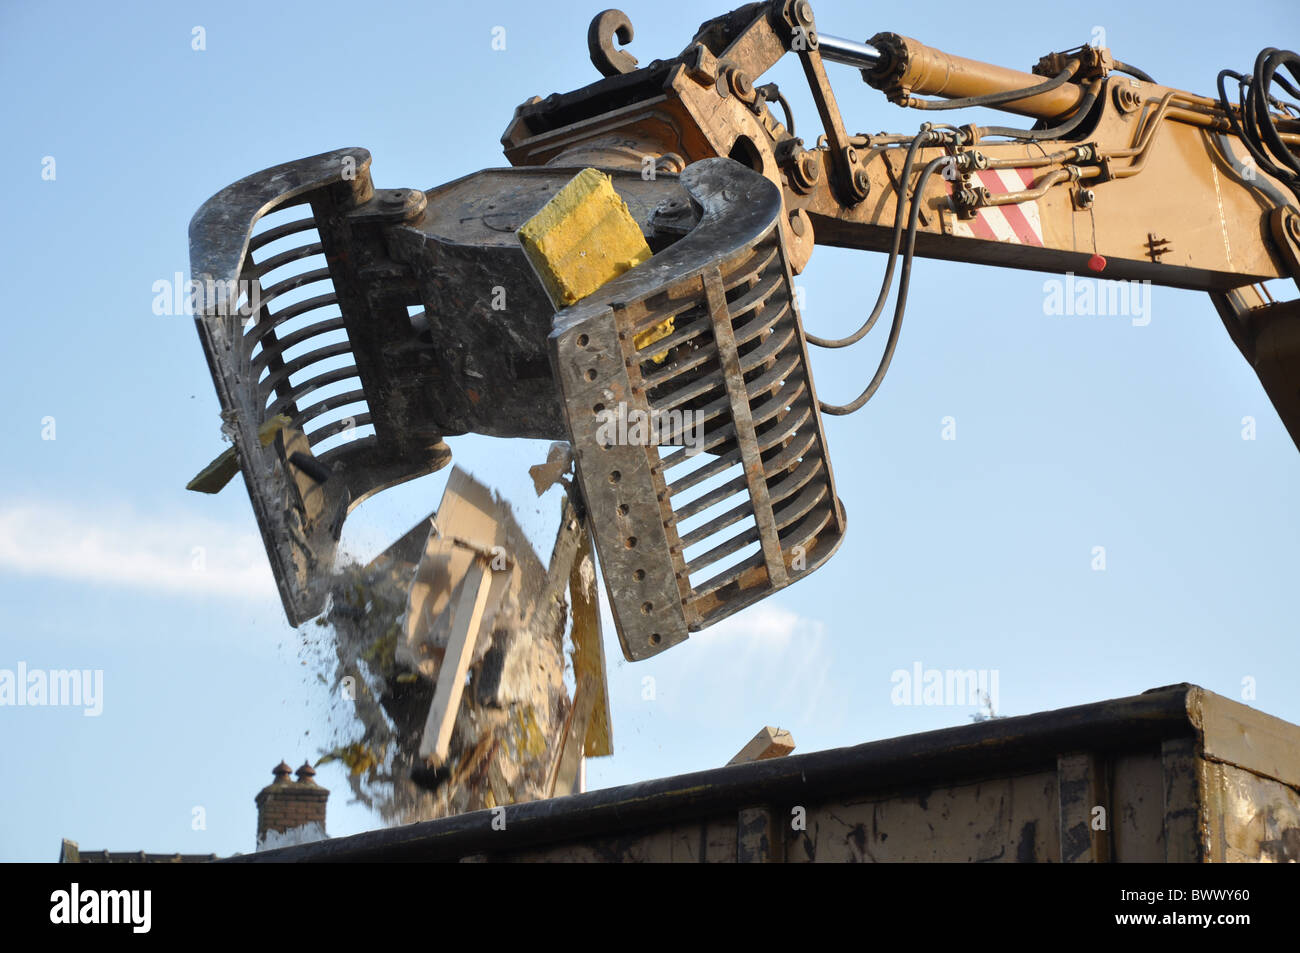 Demolition machinery in action dropping building materials - Stock Image